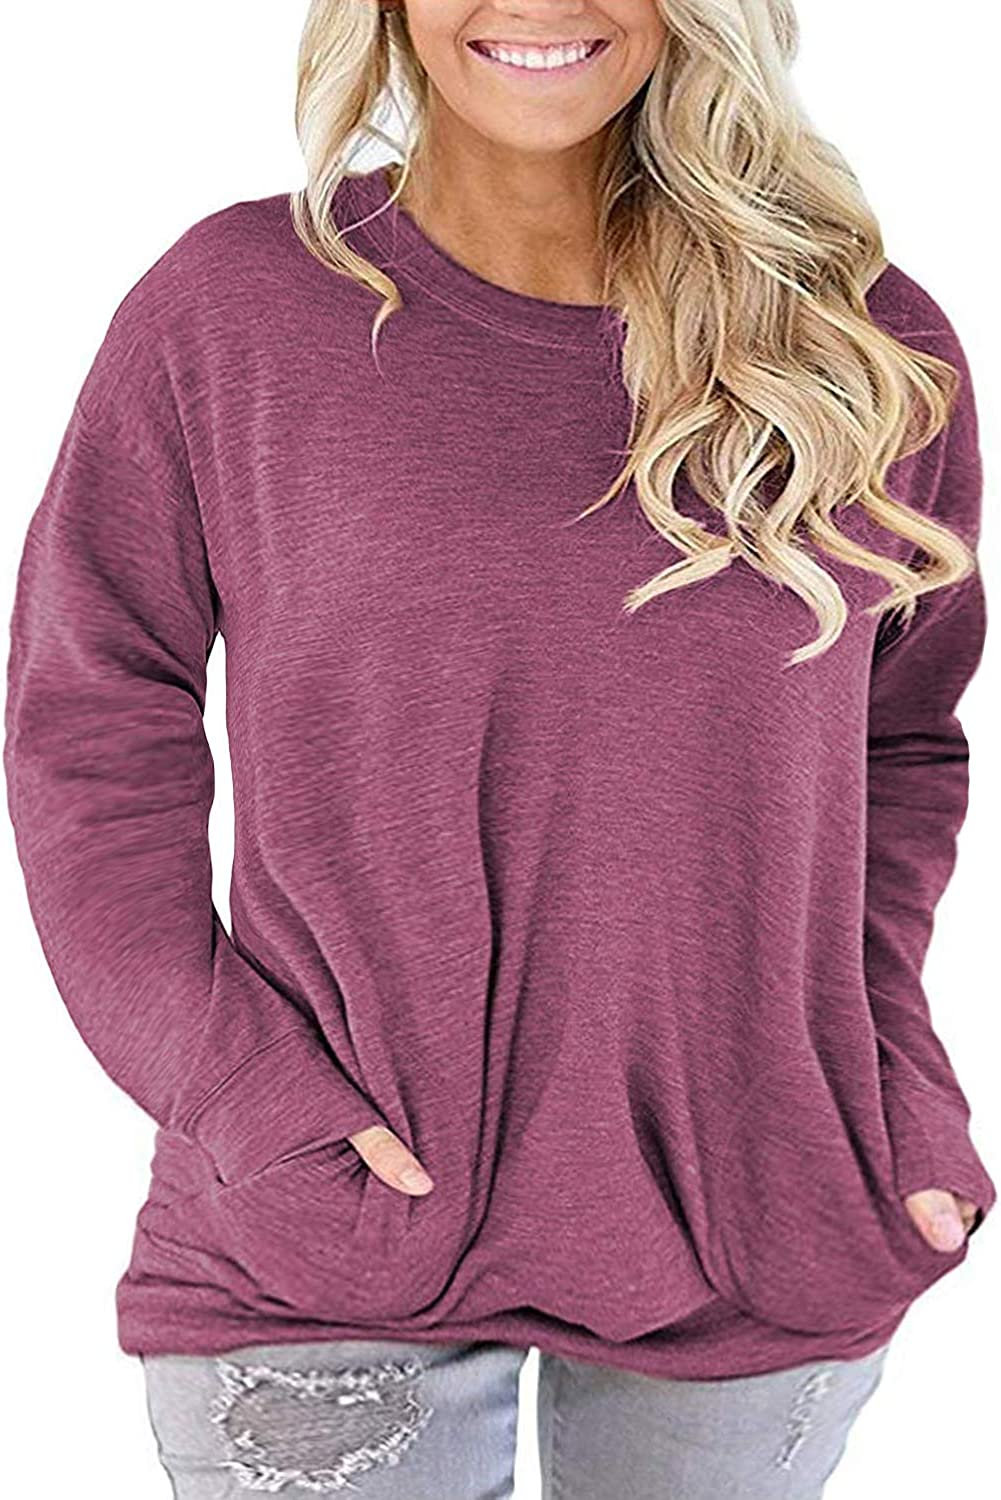 ROSRISS Womens Plus Size Long Sleeve Tee Tops Casual Tunics Shirts with Pockets